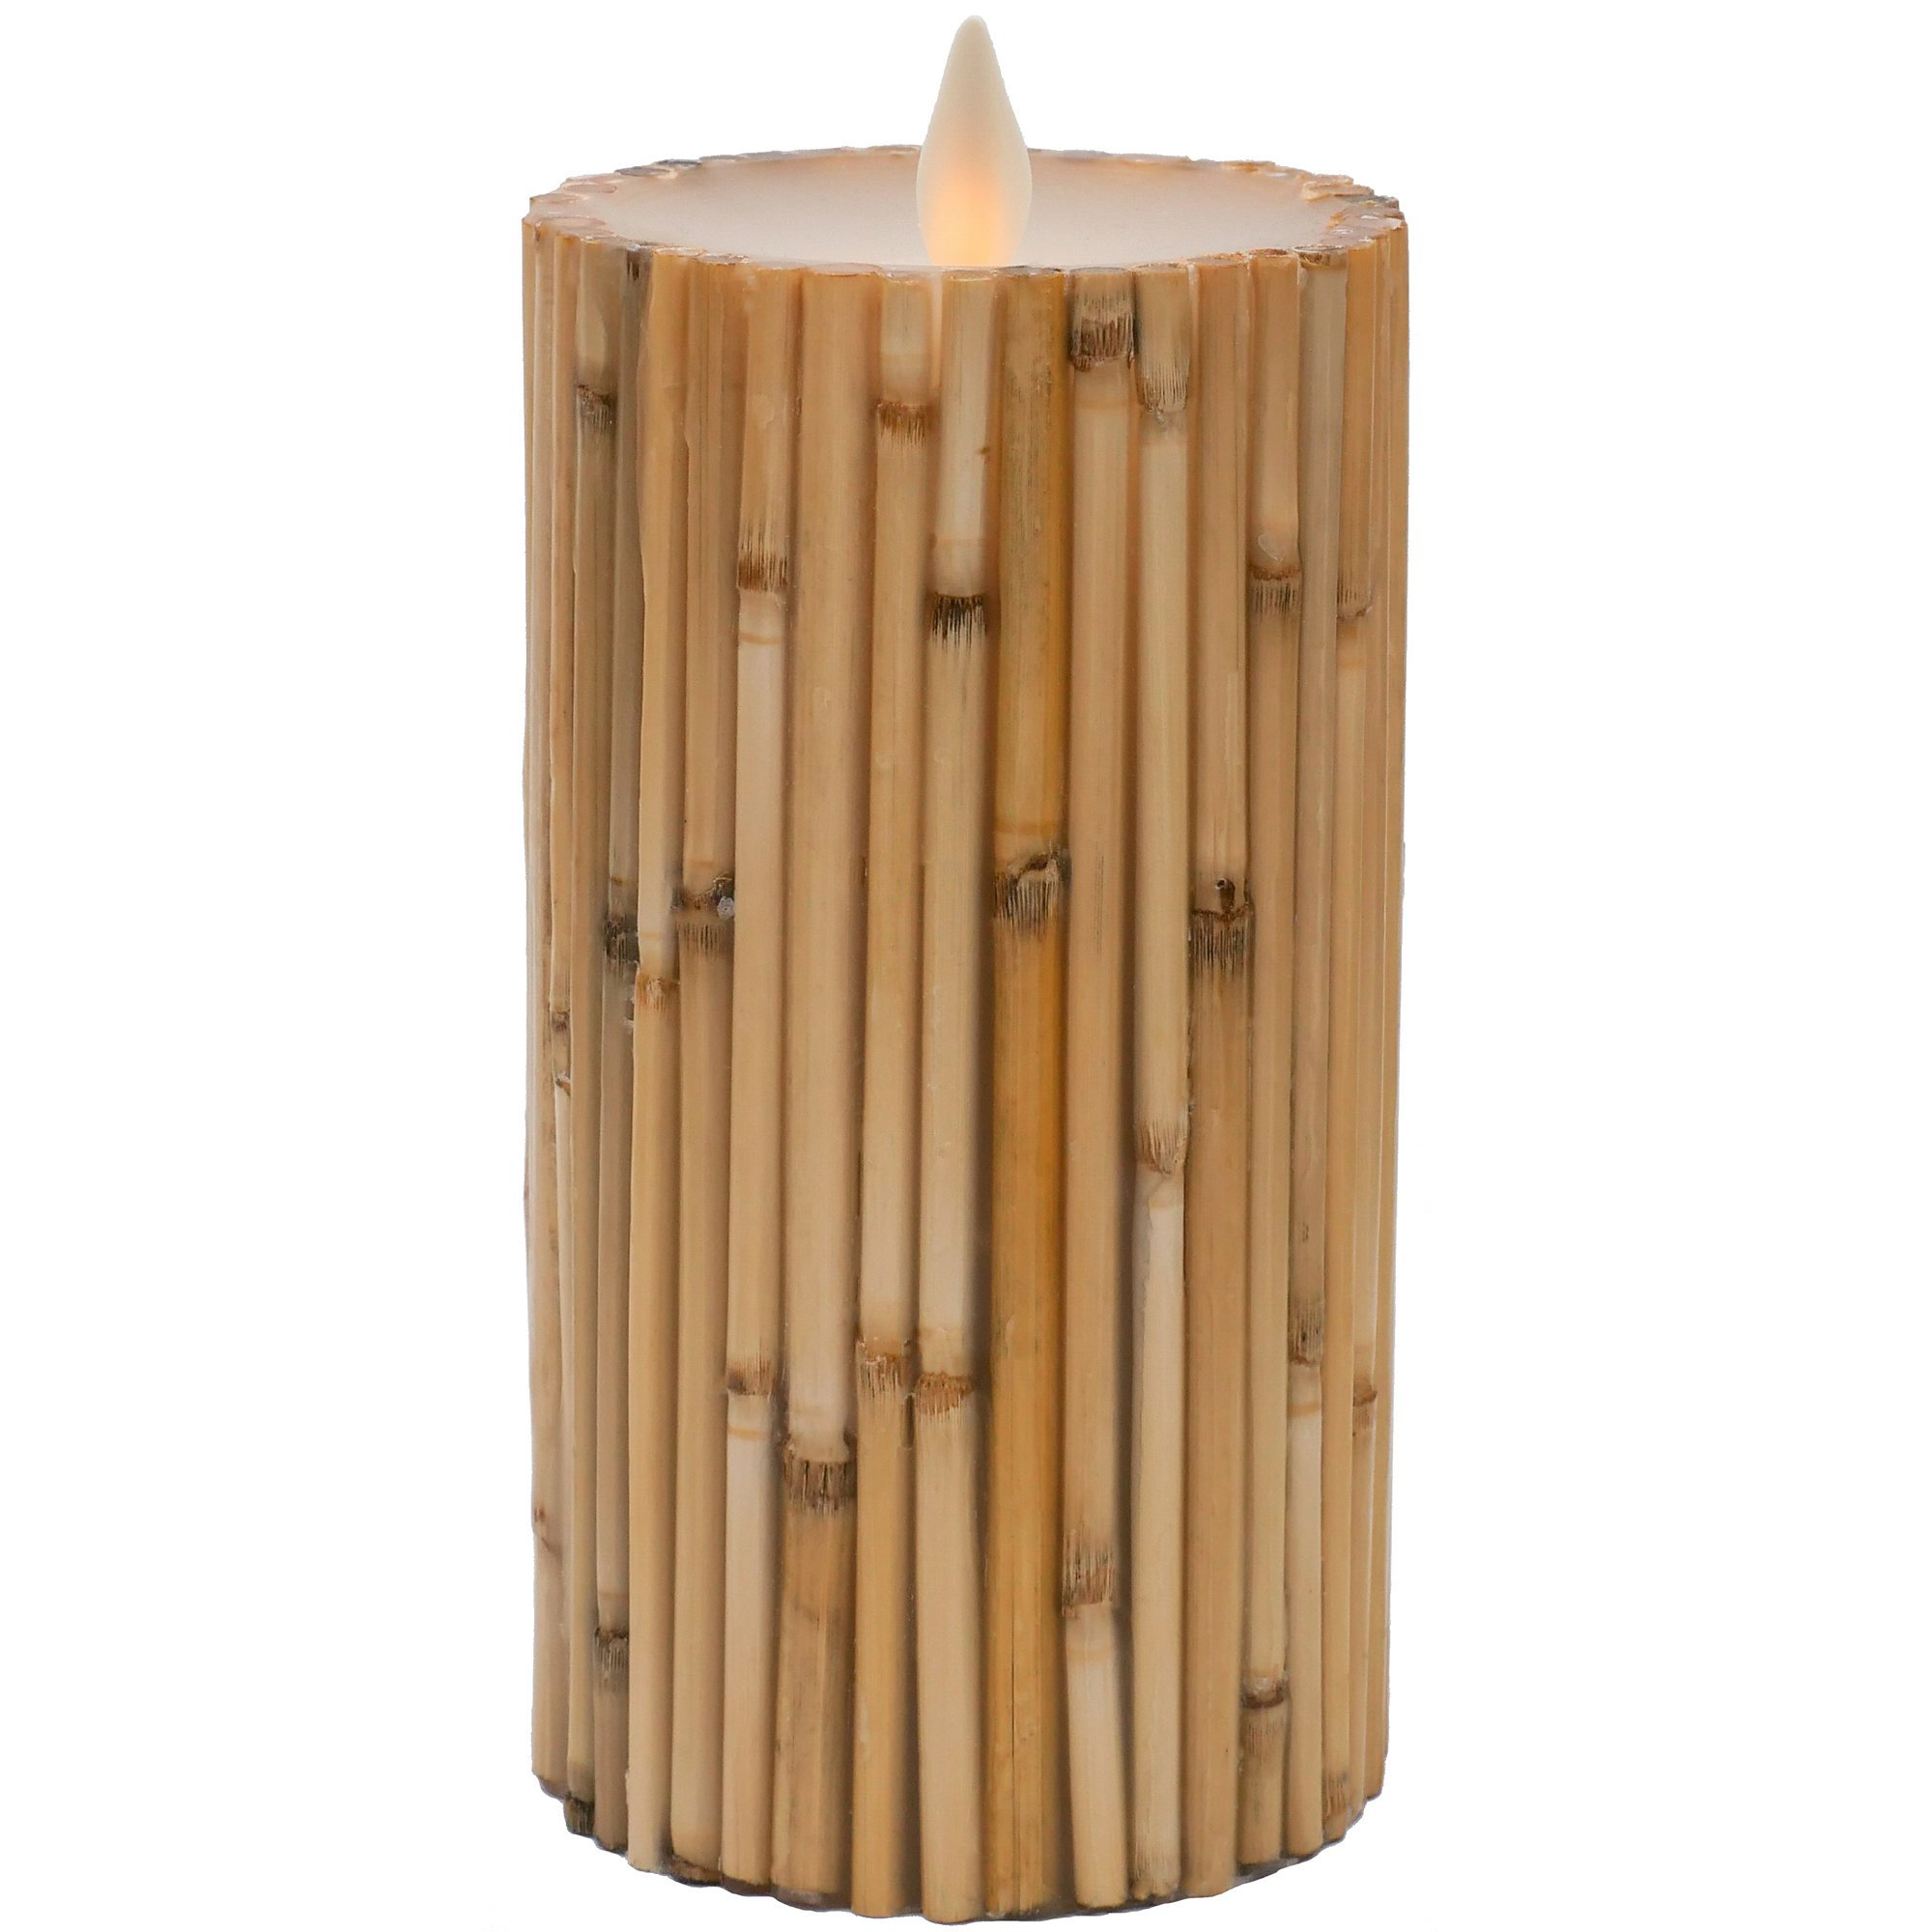 "Hooga Life Bamboo Flameless Candle – 5"" Tall x 3"" Diameter Real Wax Pillar, Battery Operated LED Flickering Wick, Timer - For Safe Indoor and Outdoor Use – Remote Control Ready"